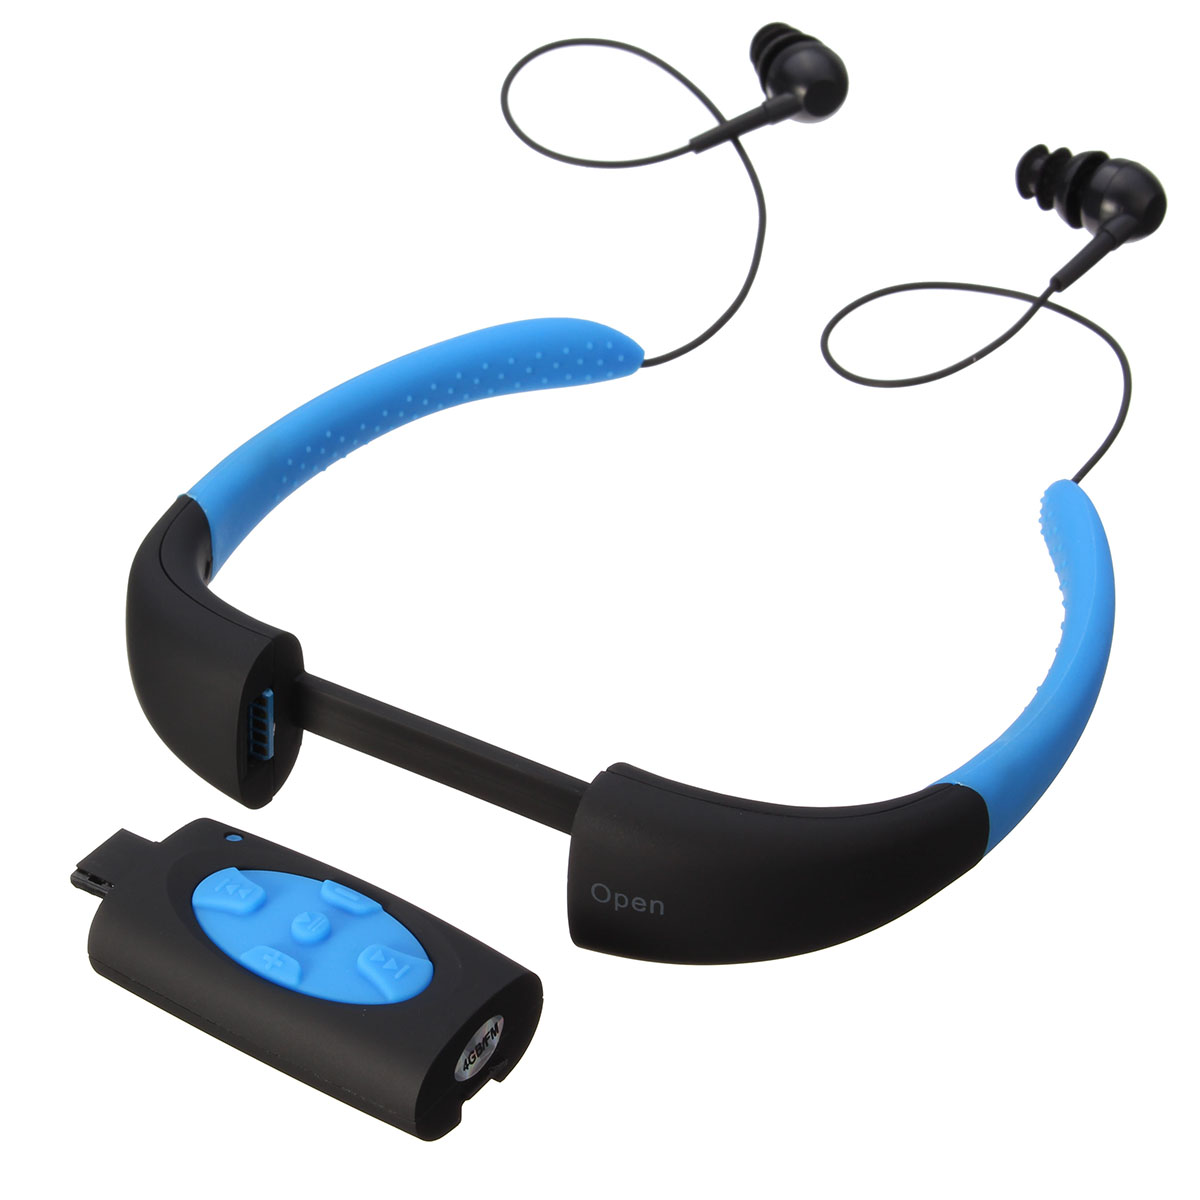 LEORY IPX8 Waterproof MP3 Player Headset Swimming Surfing SPA Diving Sports MP3 Player Built in 4GB Memory vacation